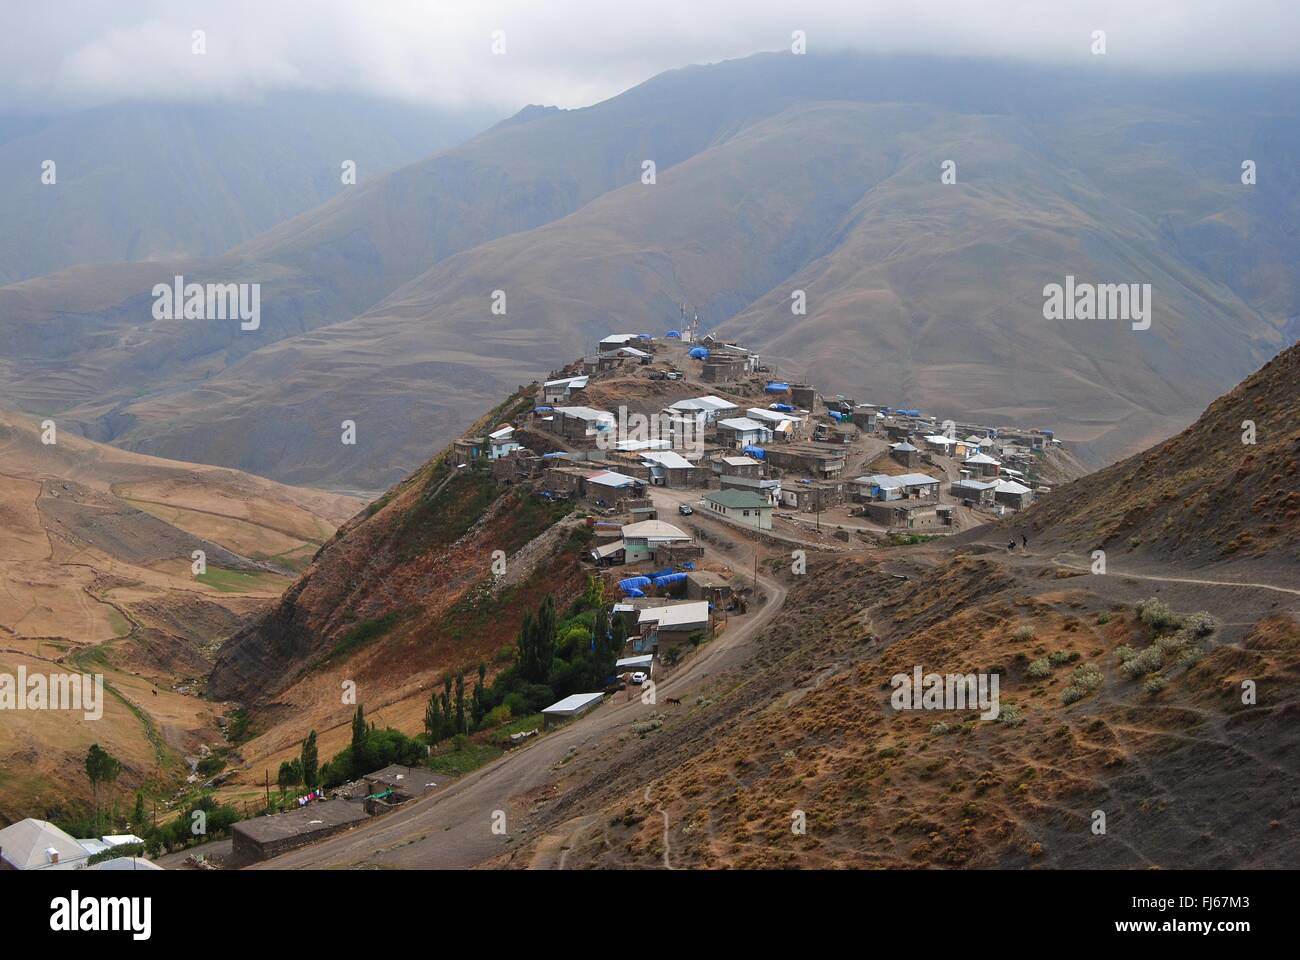 Xinaliq mountainous village in Azerbaijan Stock Photo